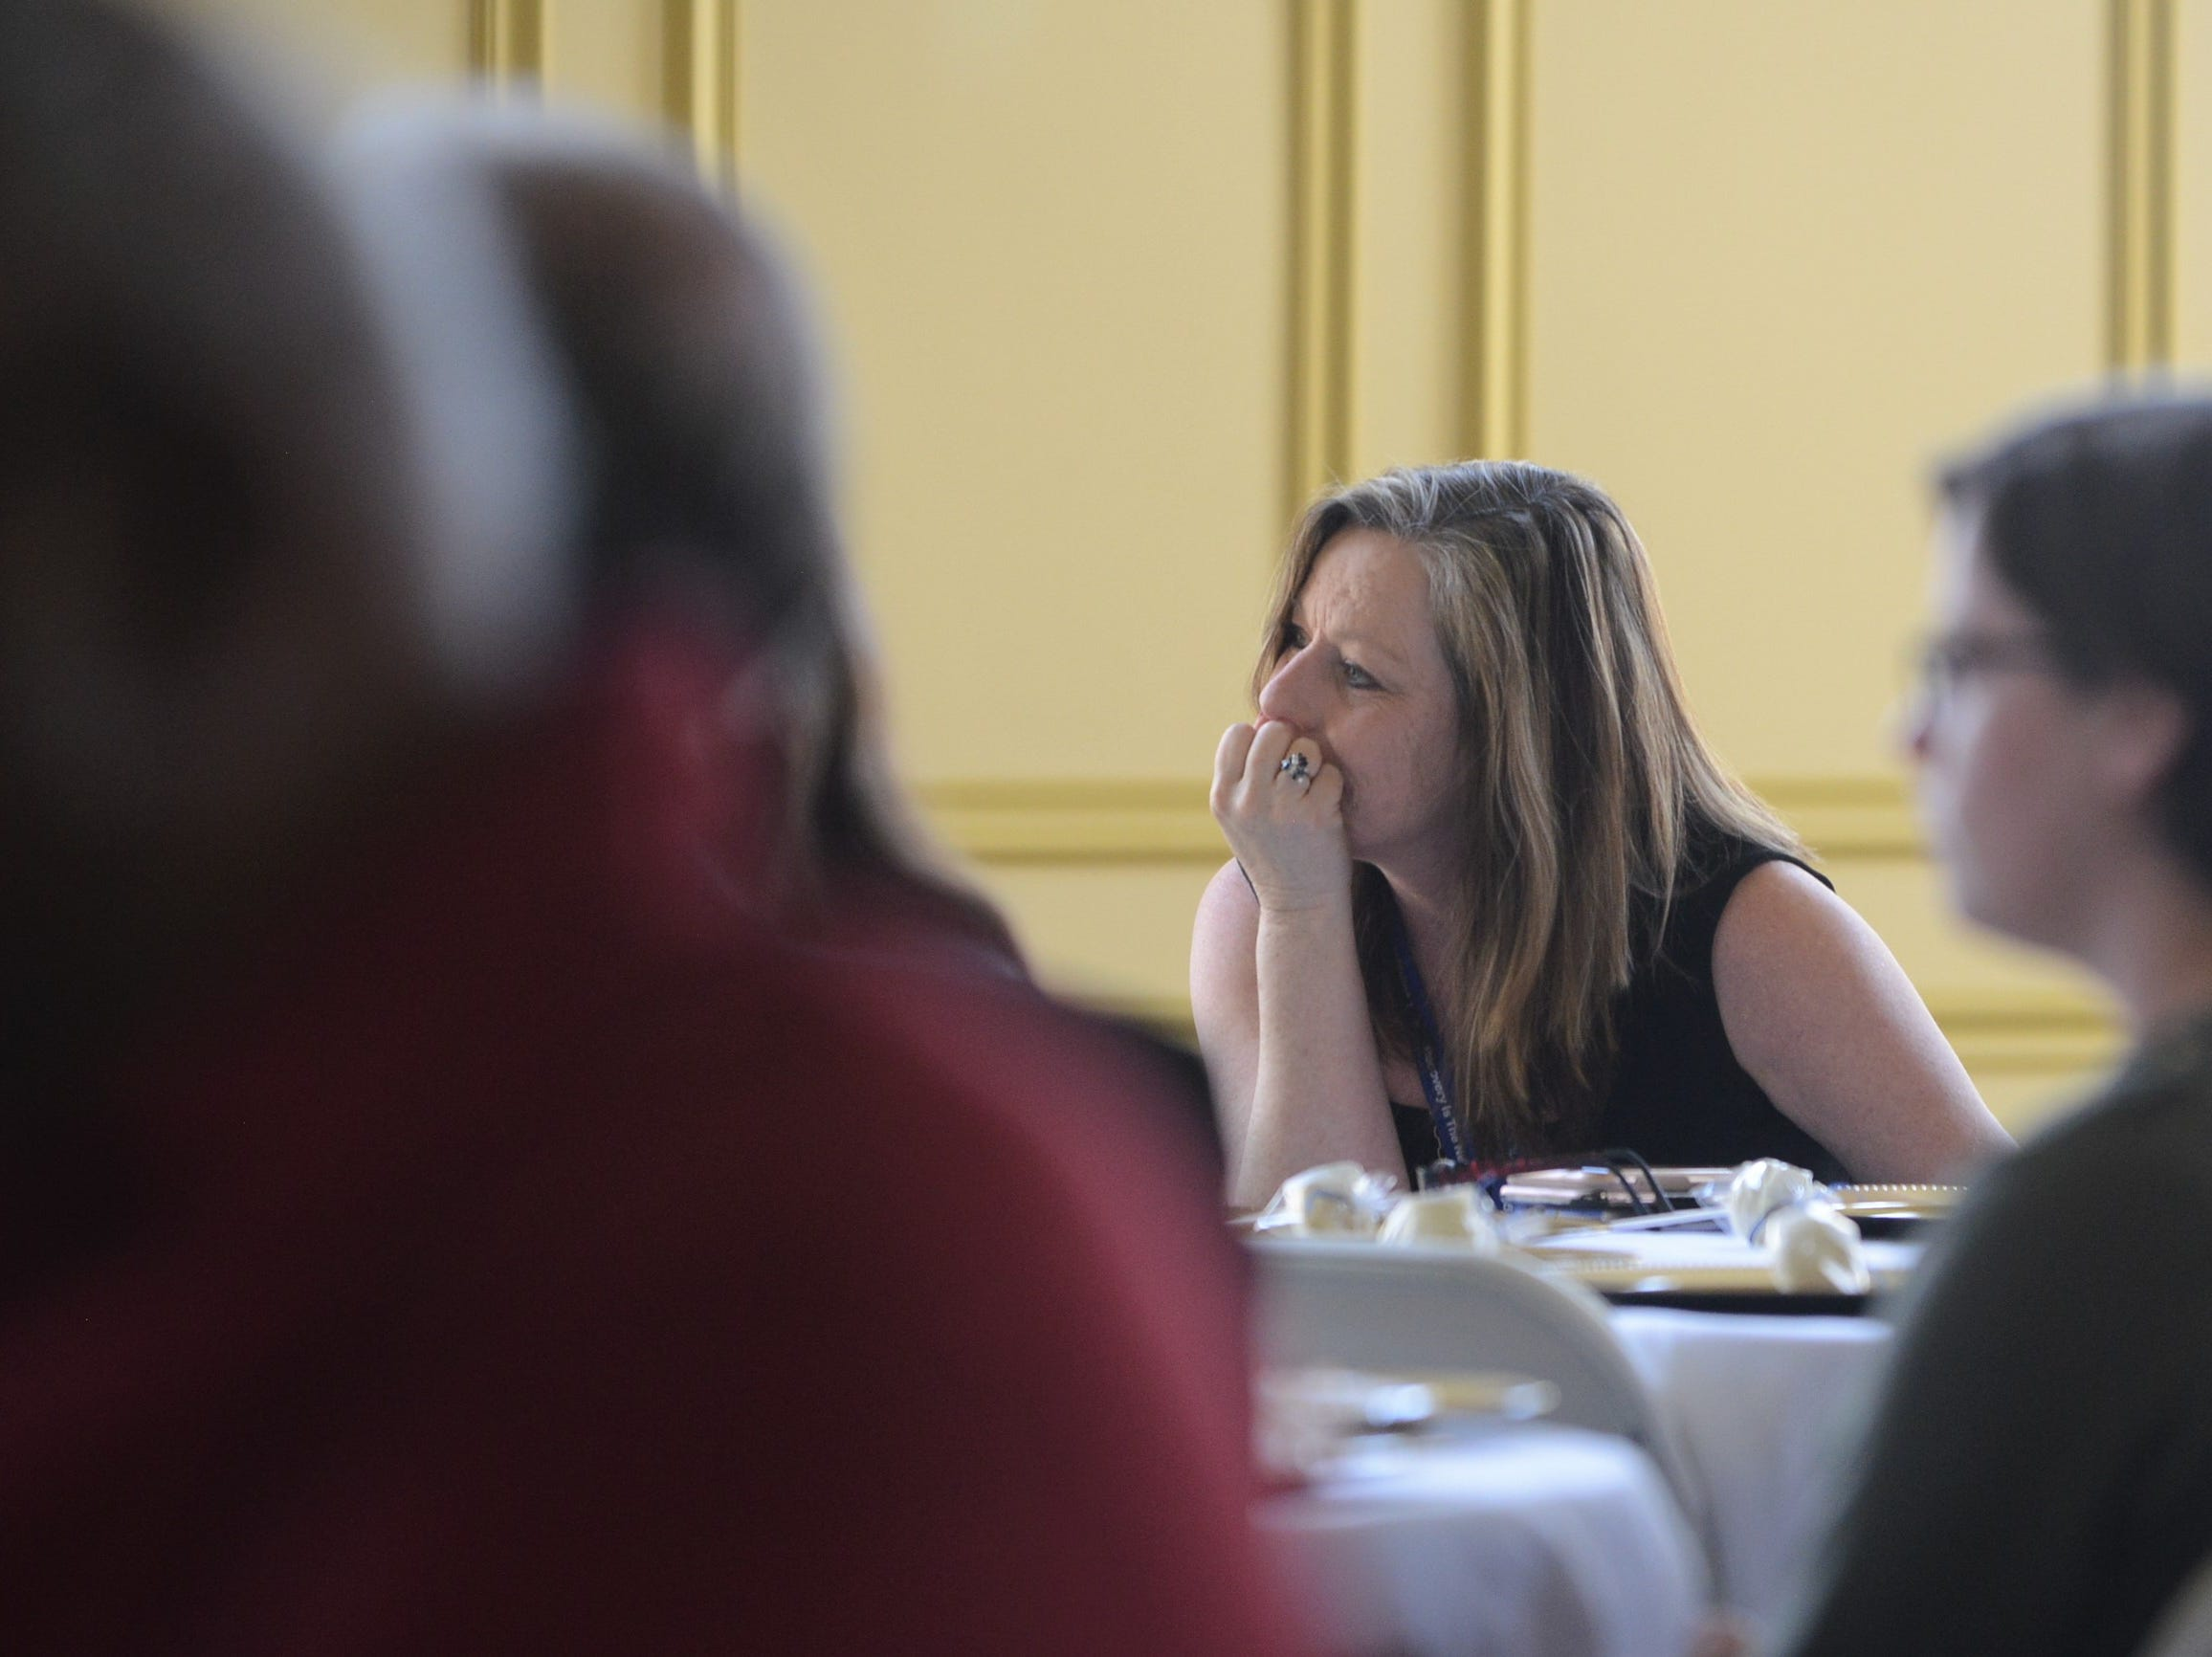 Project Lifeline Coordinator Dianne Sherrod listens to graduate testimonies at the Jackson Recovery Court graduation luncheon at the New Southern Hotel on Wednesday, April 3.